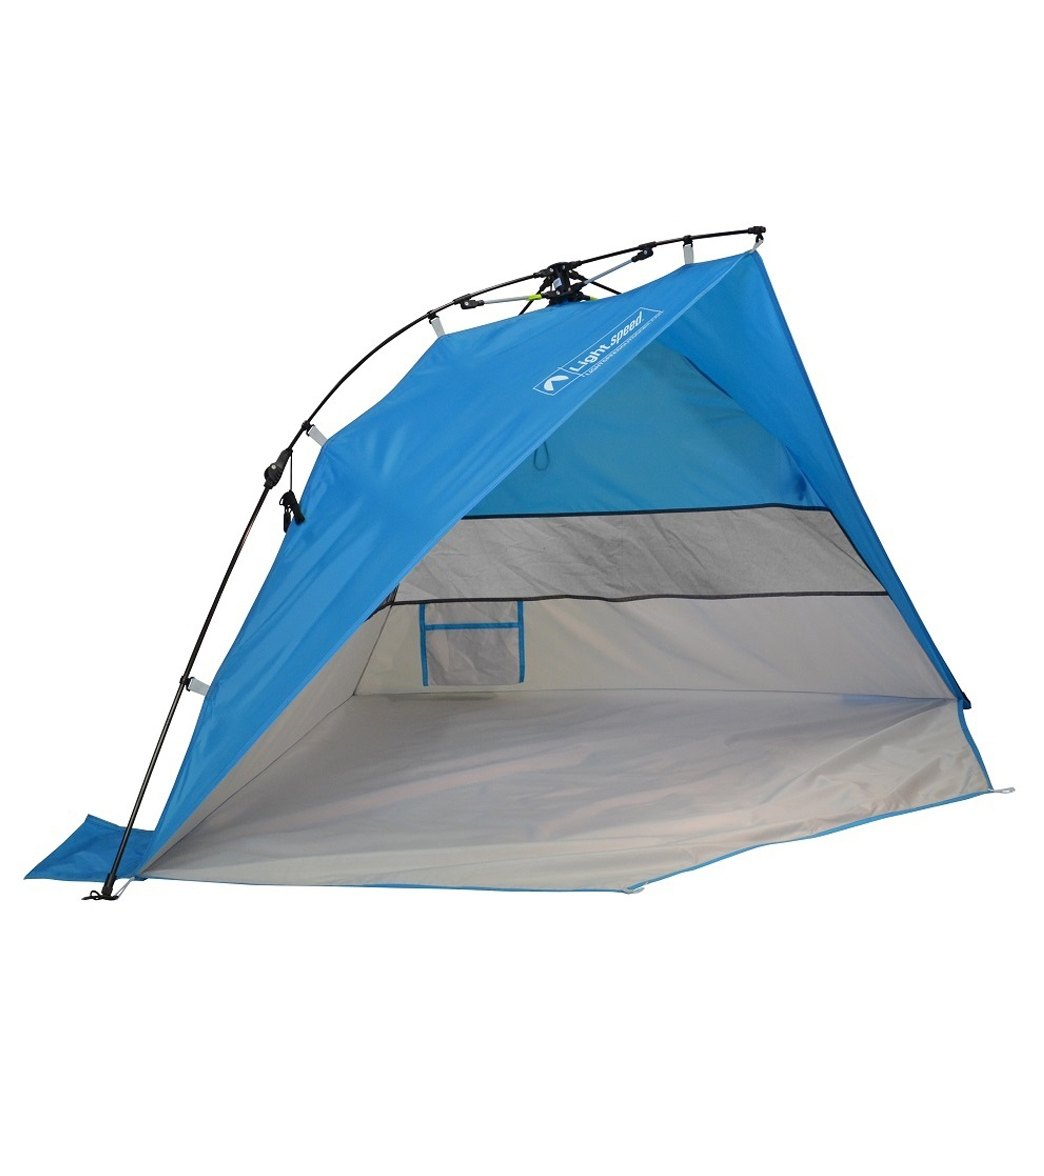 sc 1 st  SwimOutlet.com & Lightspeed Outdoors Mini Beach Shelter at SwimOutlet.com